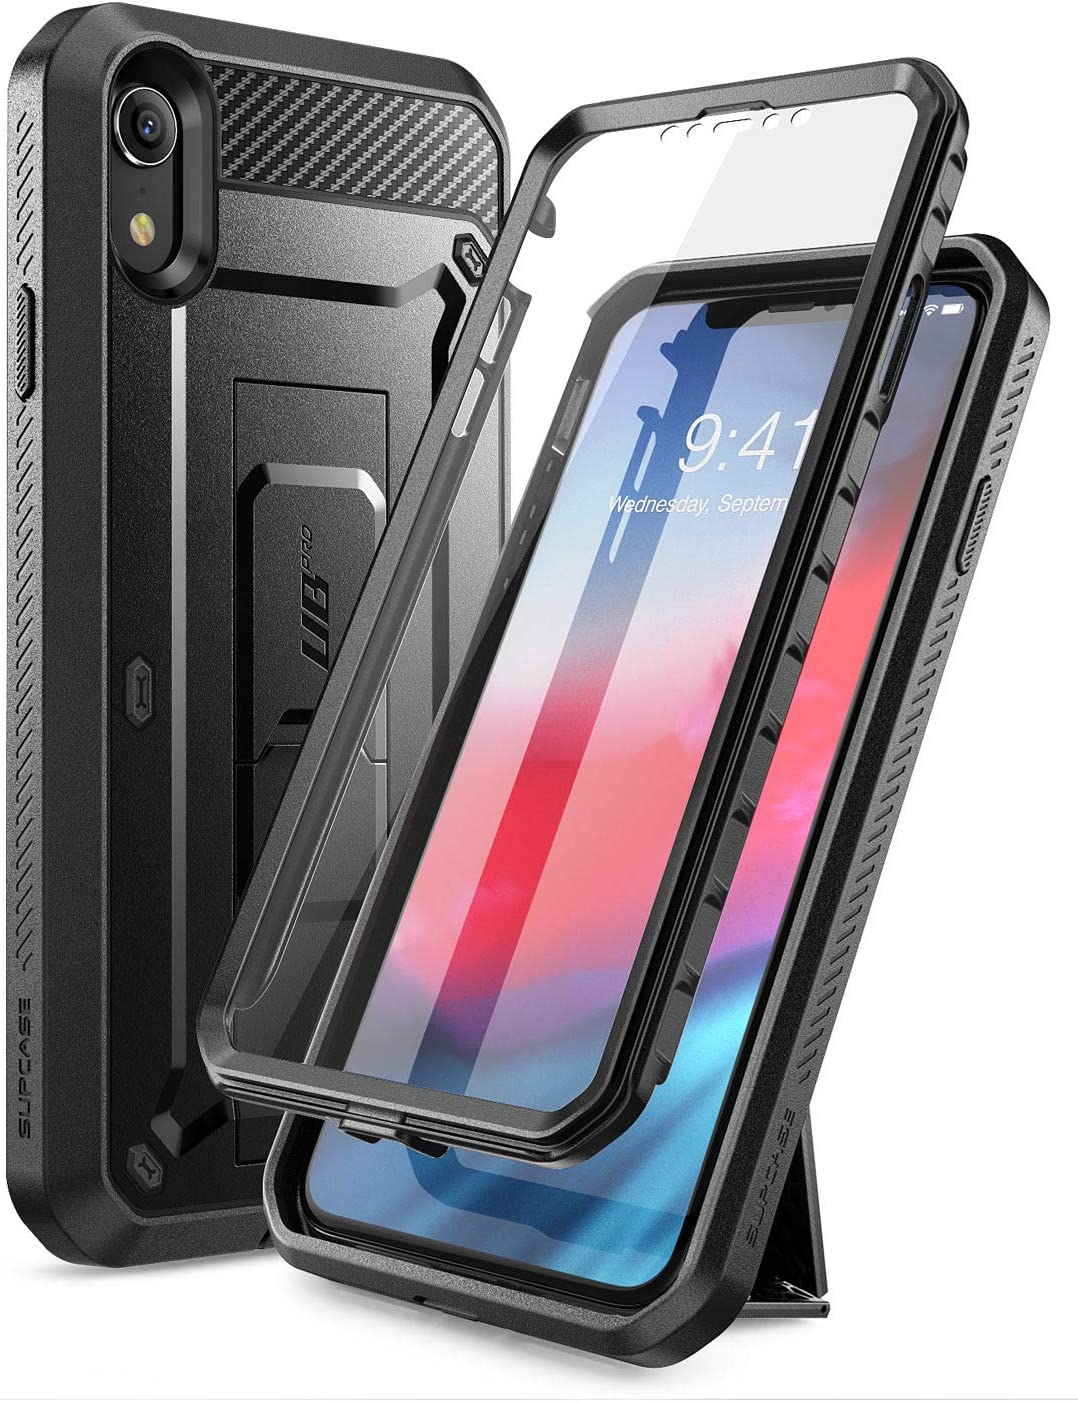 SUPCASE Unicorn Beetle Pro Series Case Designed for iPhone XR, with Built-In Screen Protector Full-Body Rugged Holster Case for iPhone XR 6.1 Inch (2018 Release) (Black)